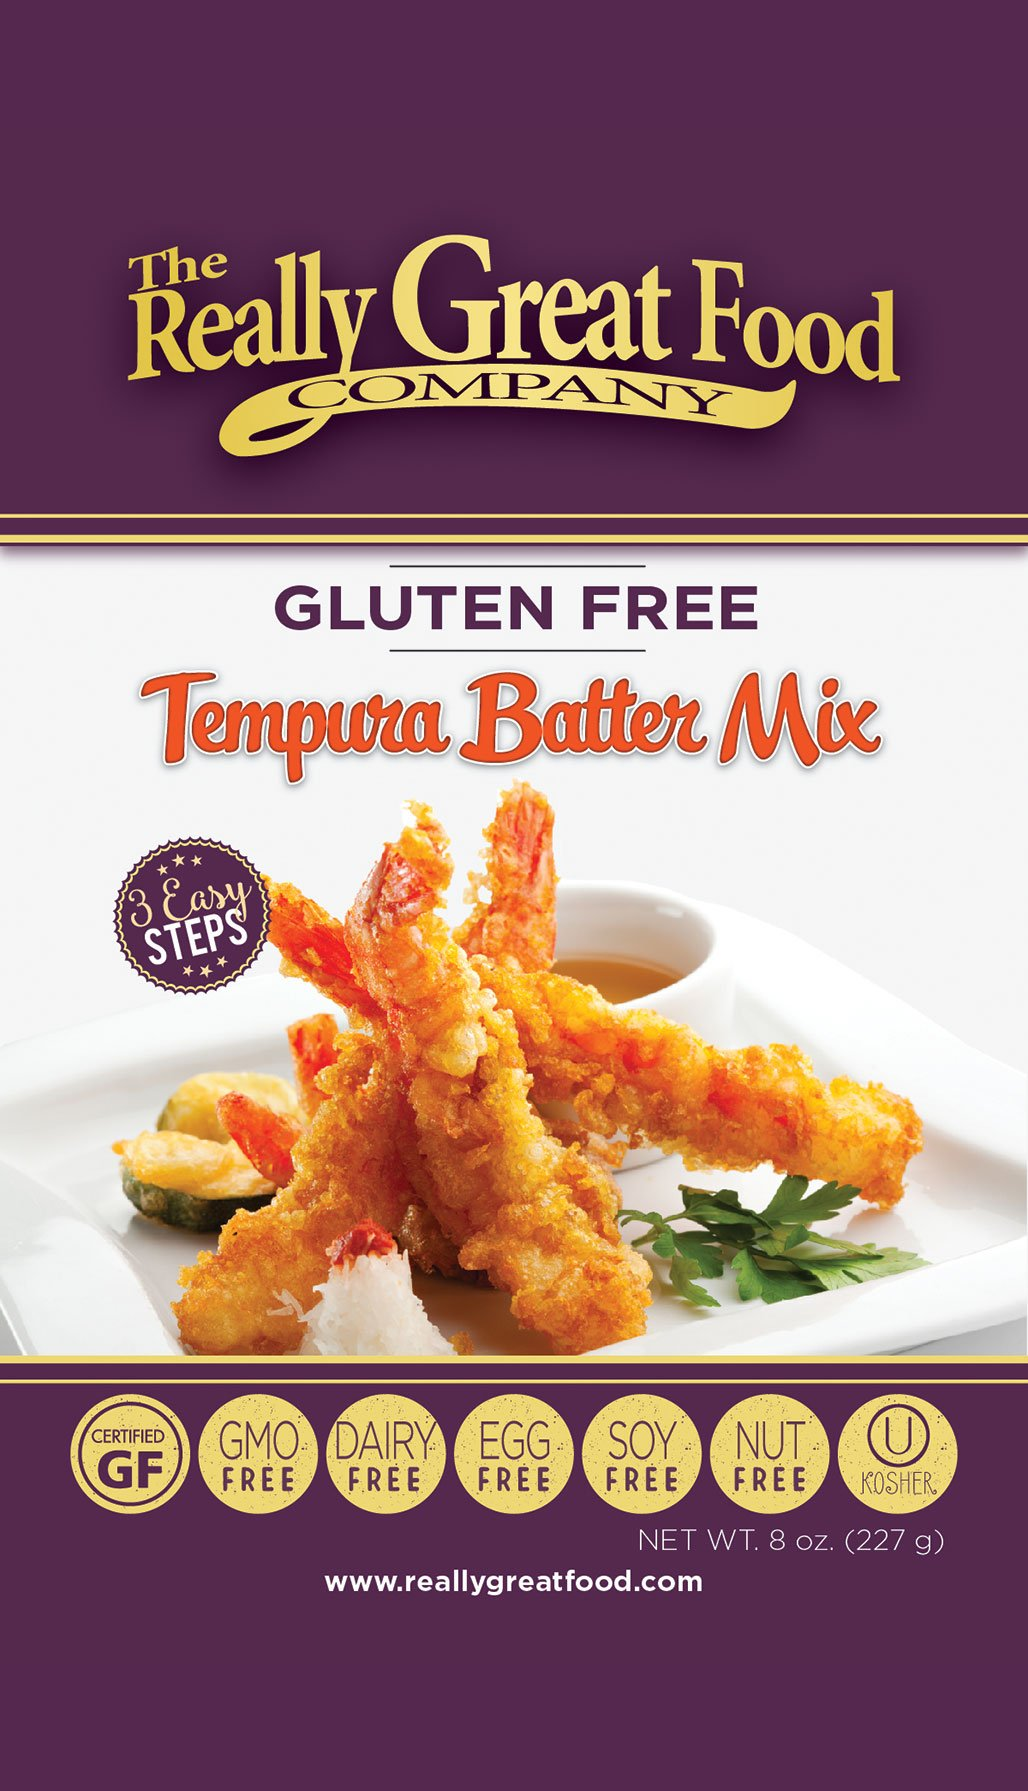 Really Great Food Company – Gluten Free Tempura Batter Mix – 8 ounces - Great for fish, chicken, and vegetables - No Soy, Nuts, Eggs, Dairy - Vegan and Kosher (3 Pack)